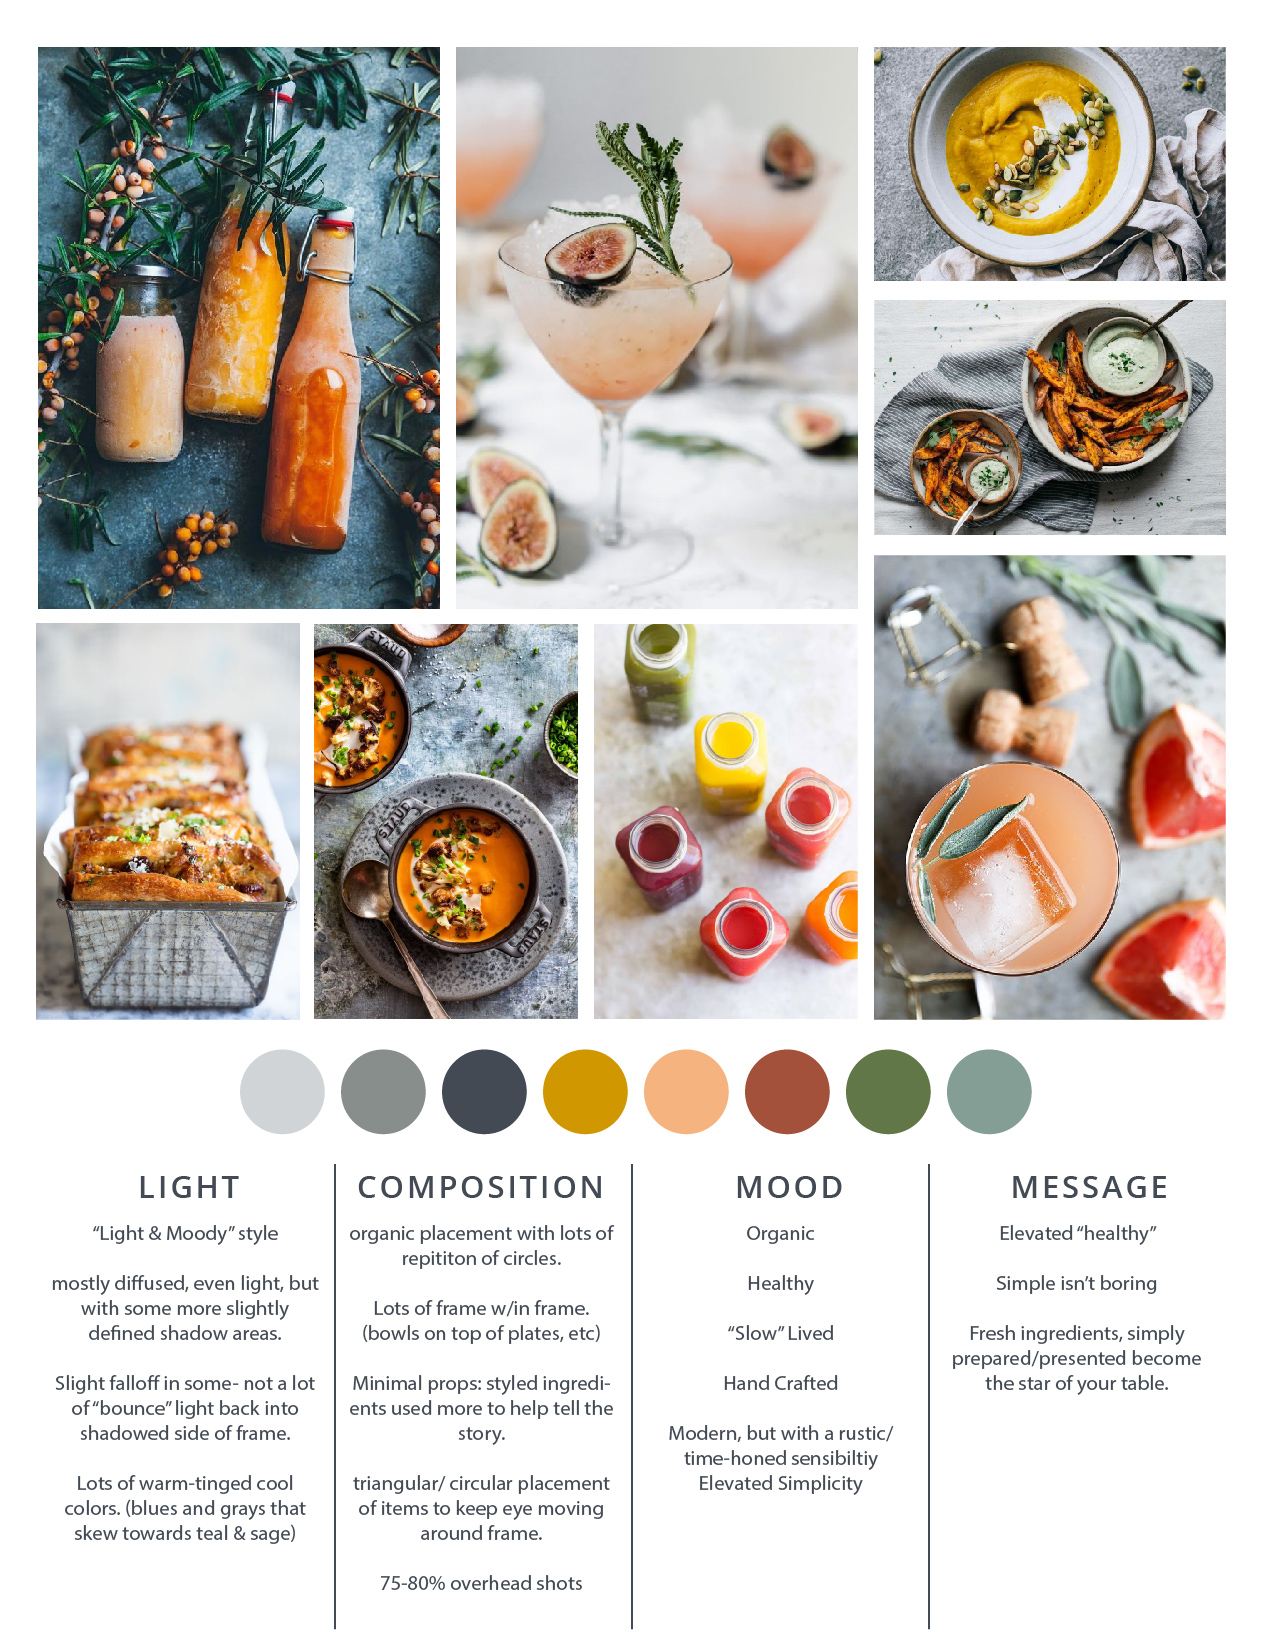 If you want to create a signature visual voice/ aesthetic for your food or wellness brand, start by creating a guide or moodboard you can refer to. It's especially helpful for creating a branded look on Instagram and can inform your colors, lighting, mood and overall style.